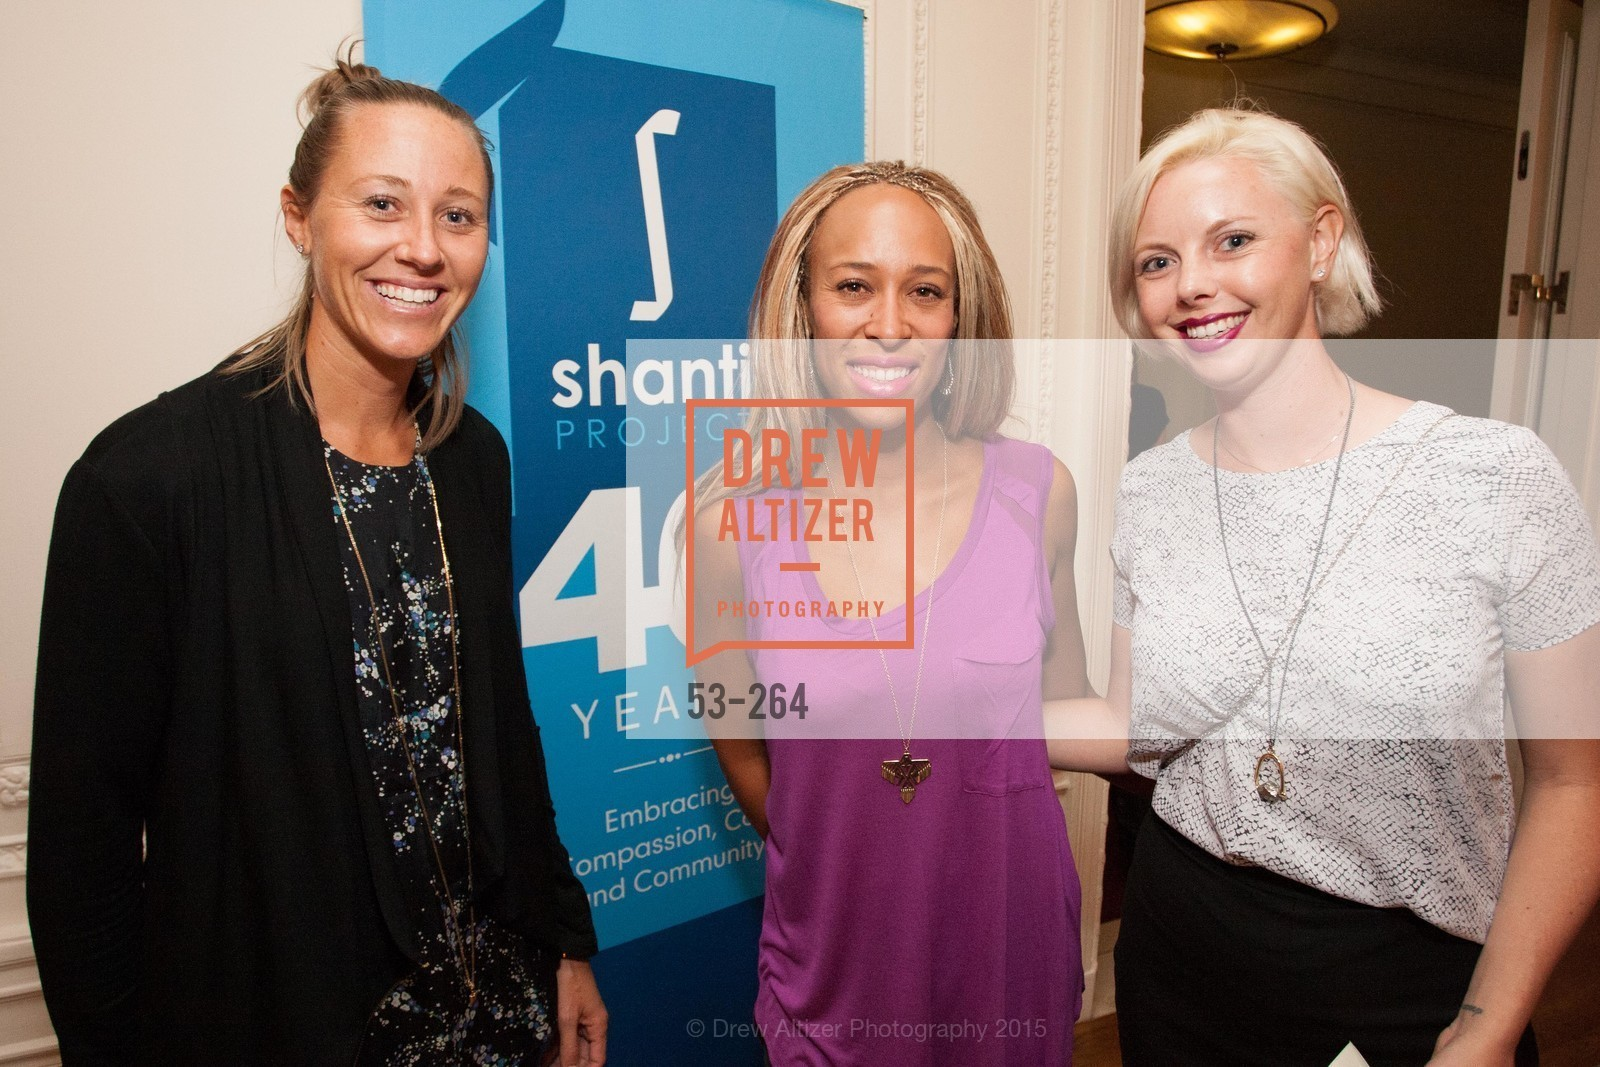 Kady Pooler, Charlotte Scatliffe, Kristen Heller, Shanti's Compassion is Universal 41st Anniversary Preview Reception, Palace Hotel. 2 Montgomery Street, August 25th, 2015,Drew Altizer, Drew Altizer Photography, full-service agency, private events, San Francisco photographer, photographer california